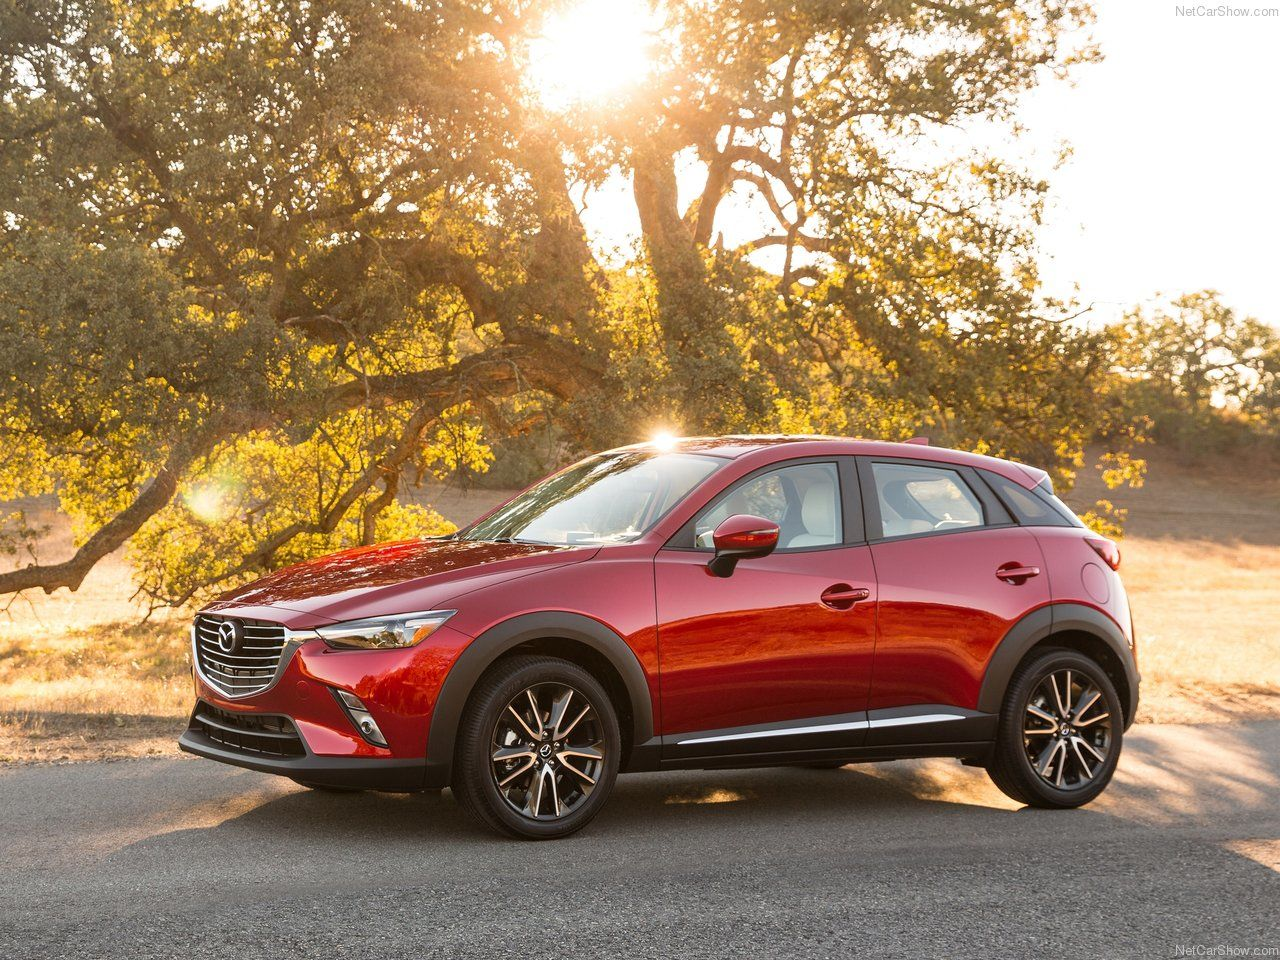 Mazda Steals the Show at the Los Angeles Auto Show